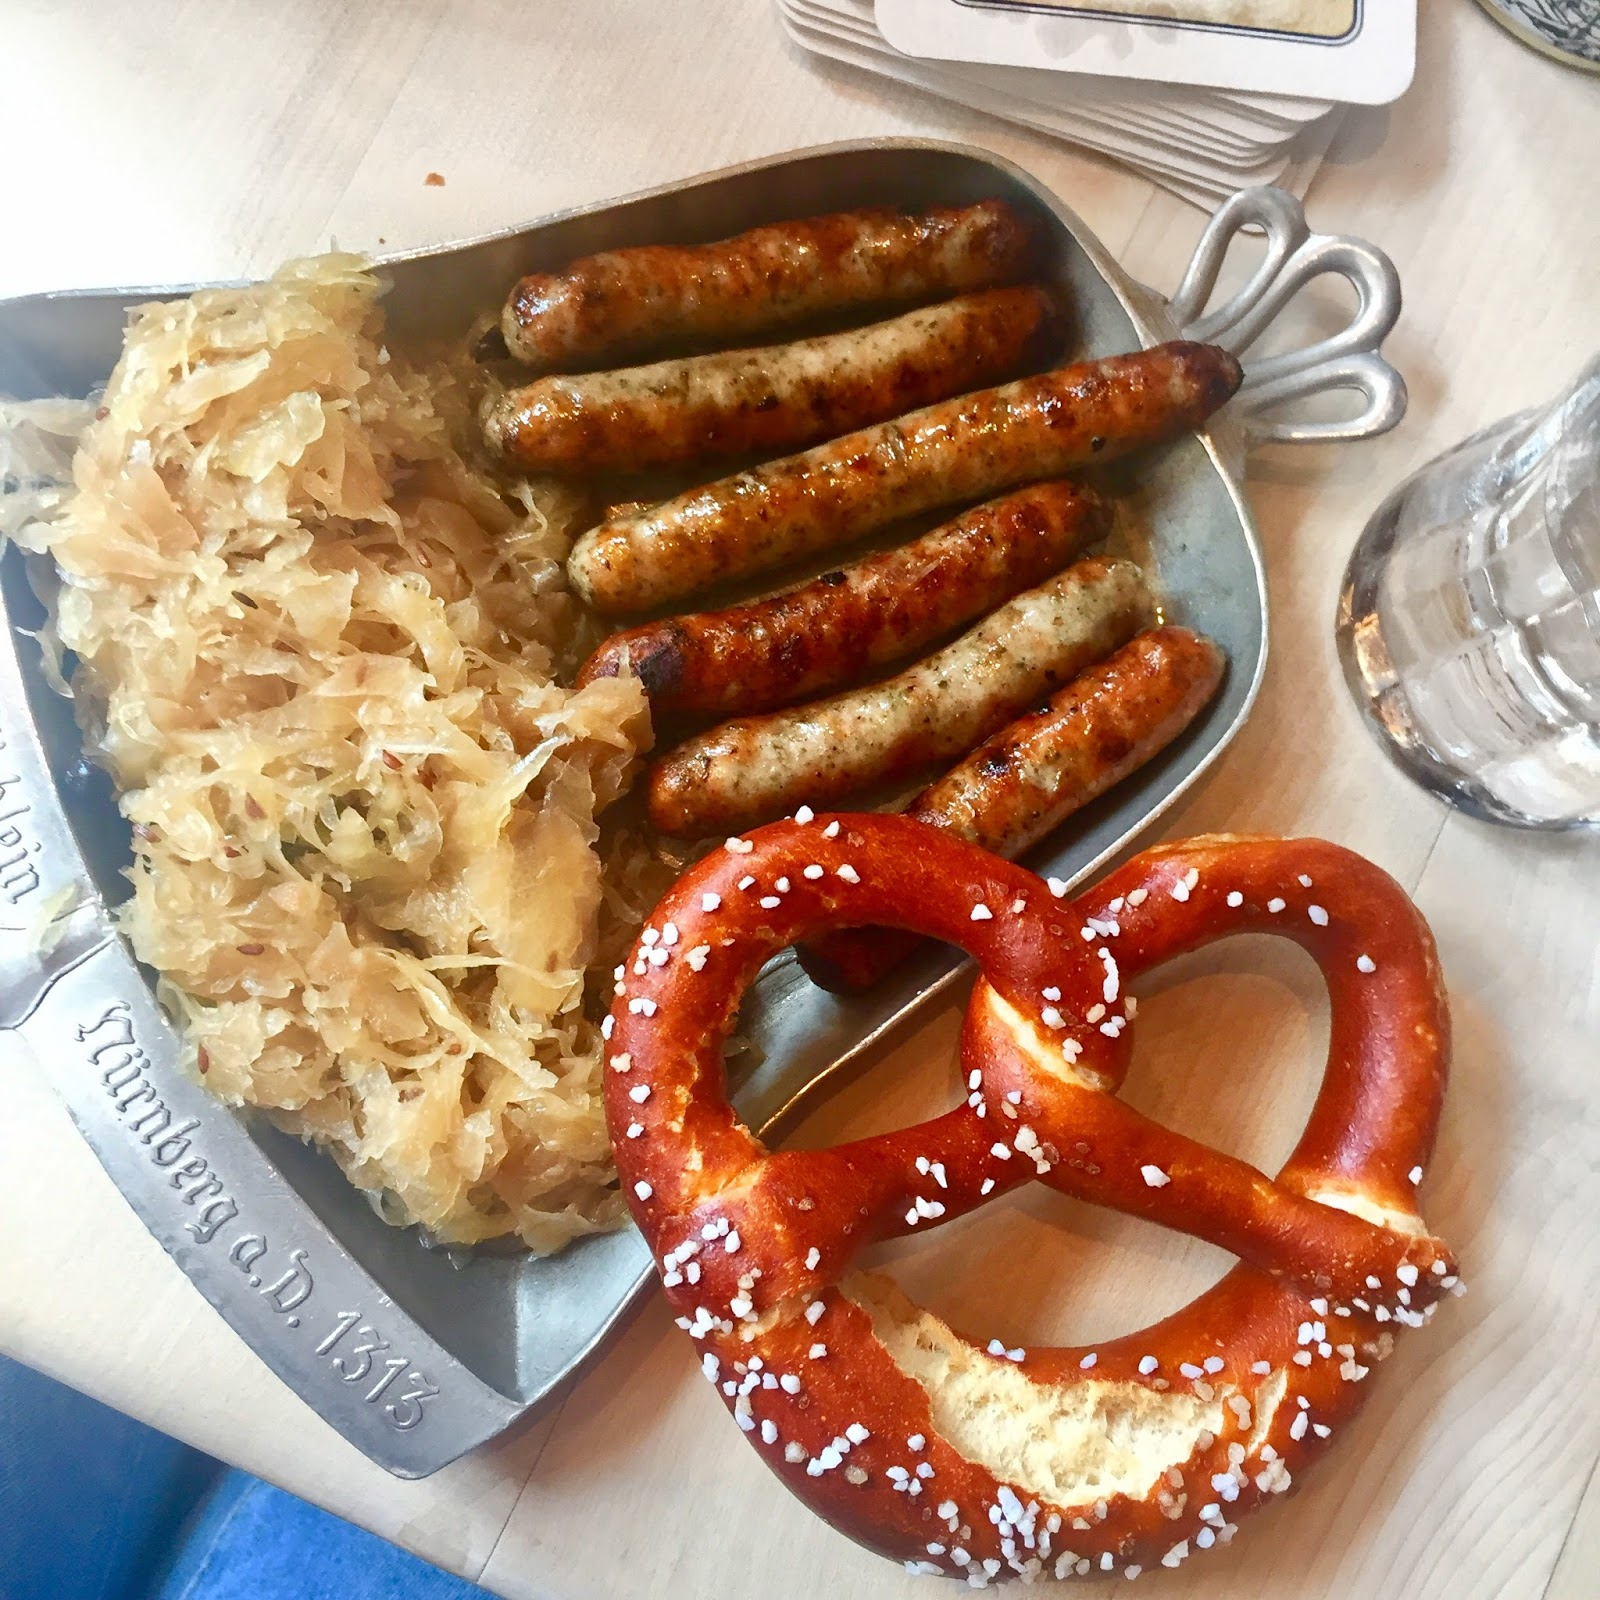 Typical German food